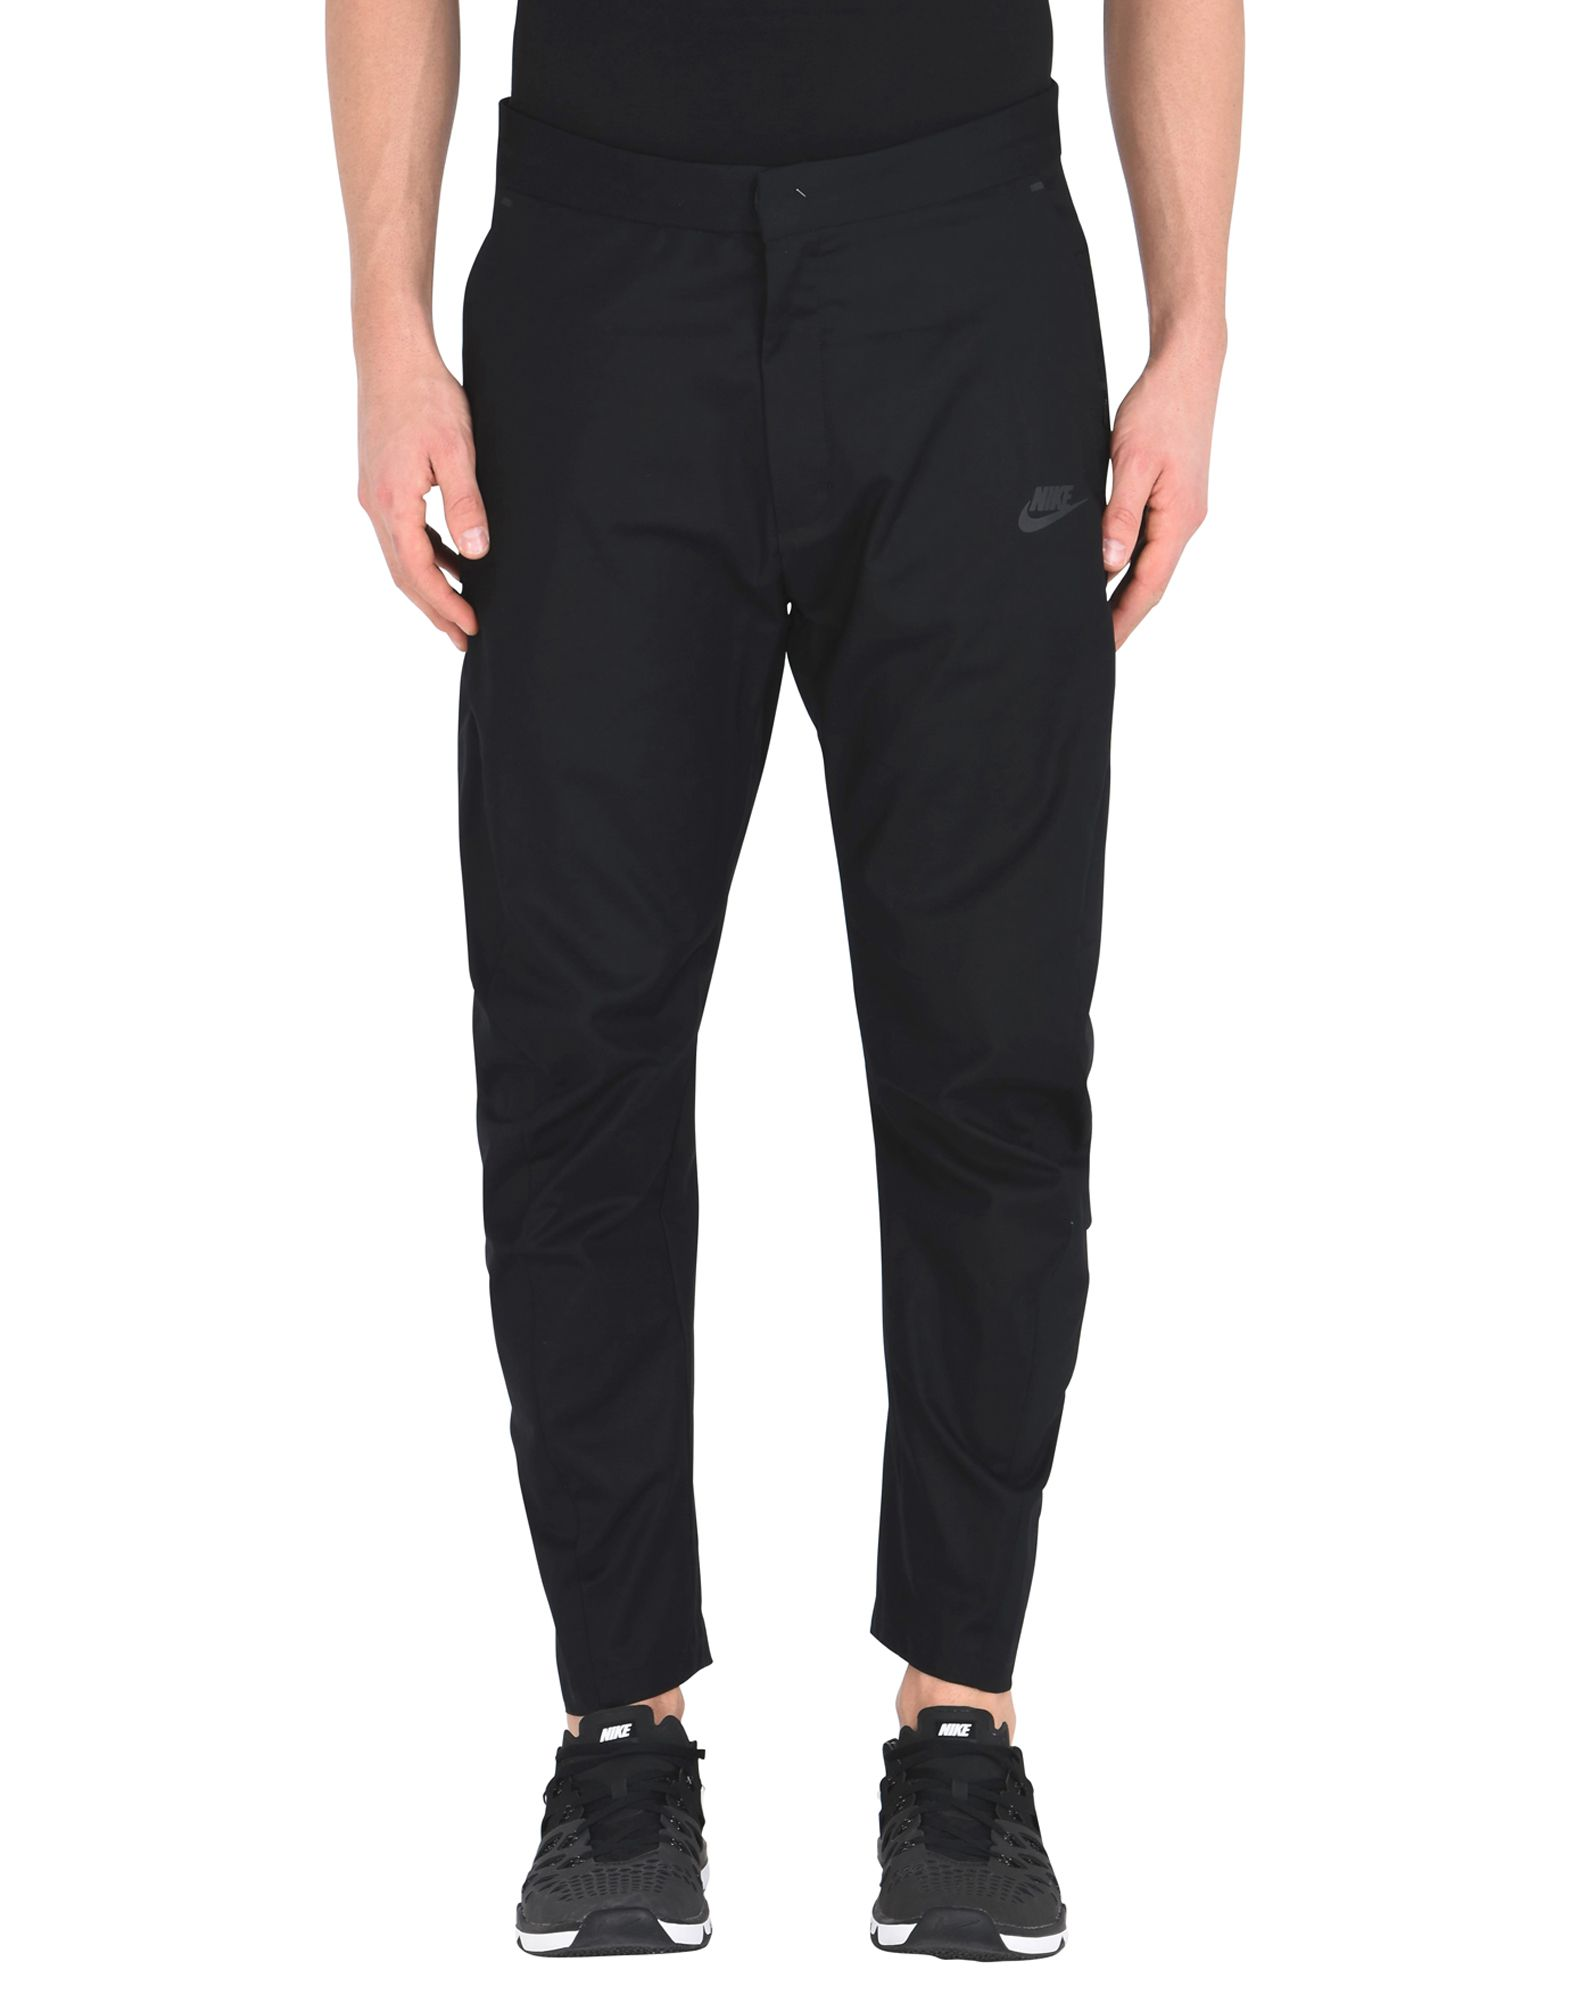 Pantalone Nike Bonded Pant Short Woven - Uomo - Acquista online su